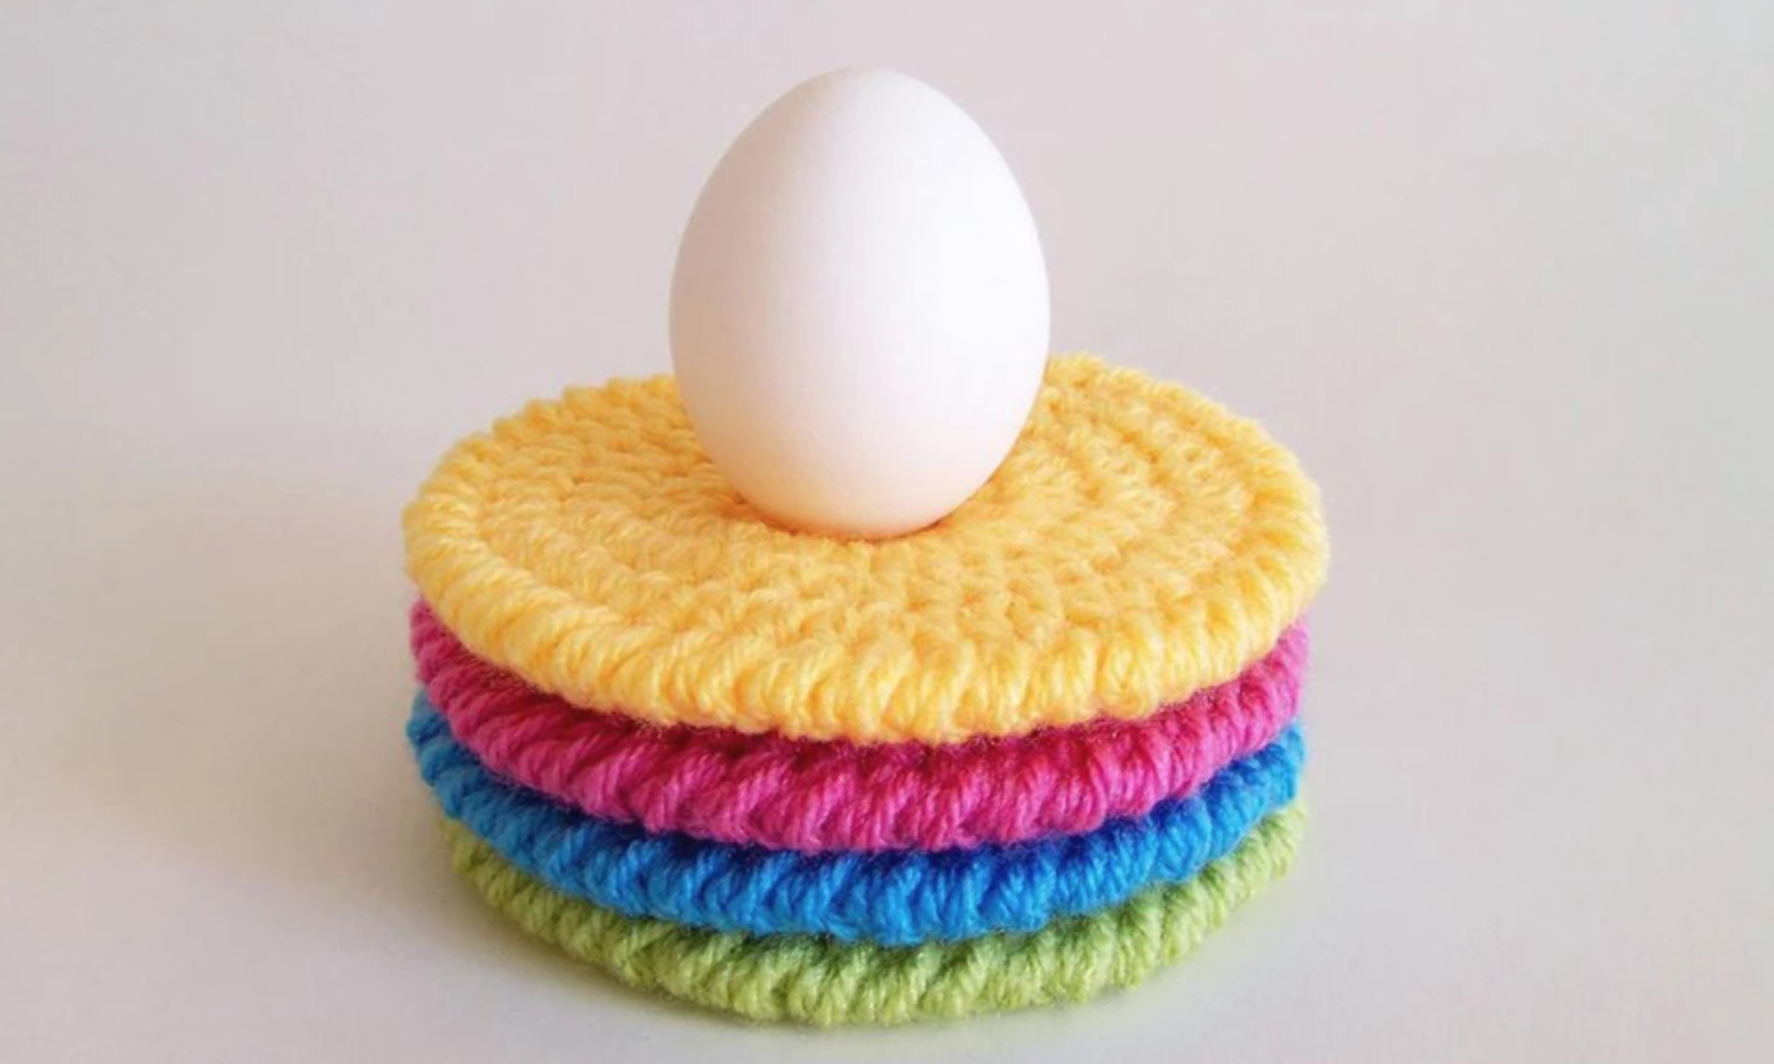 crochet colorful coasters